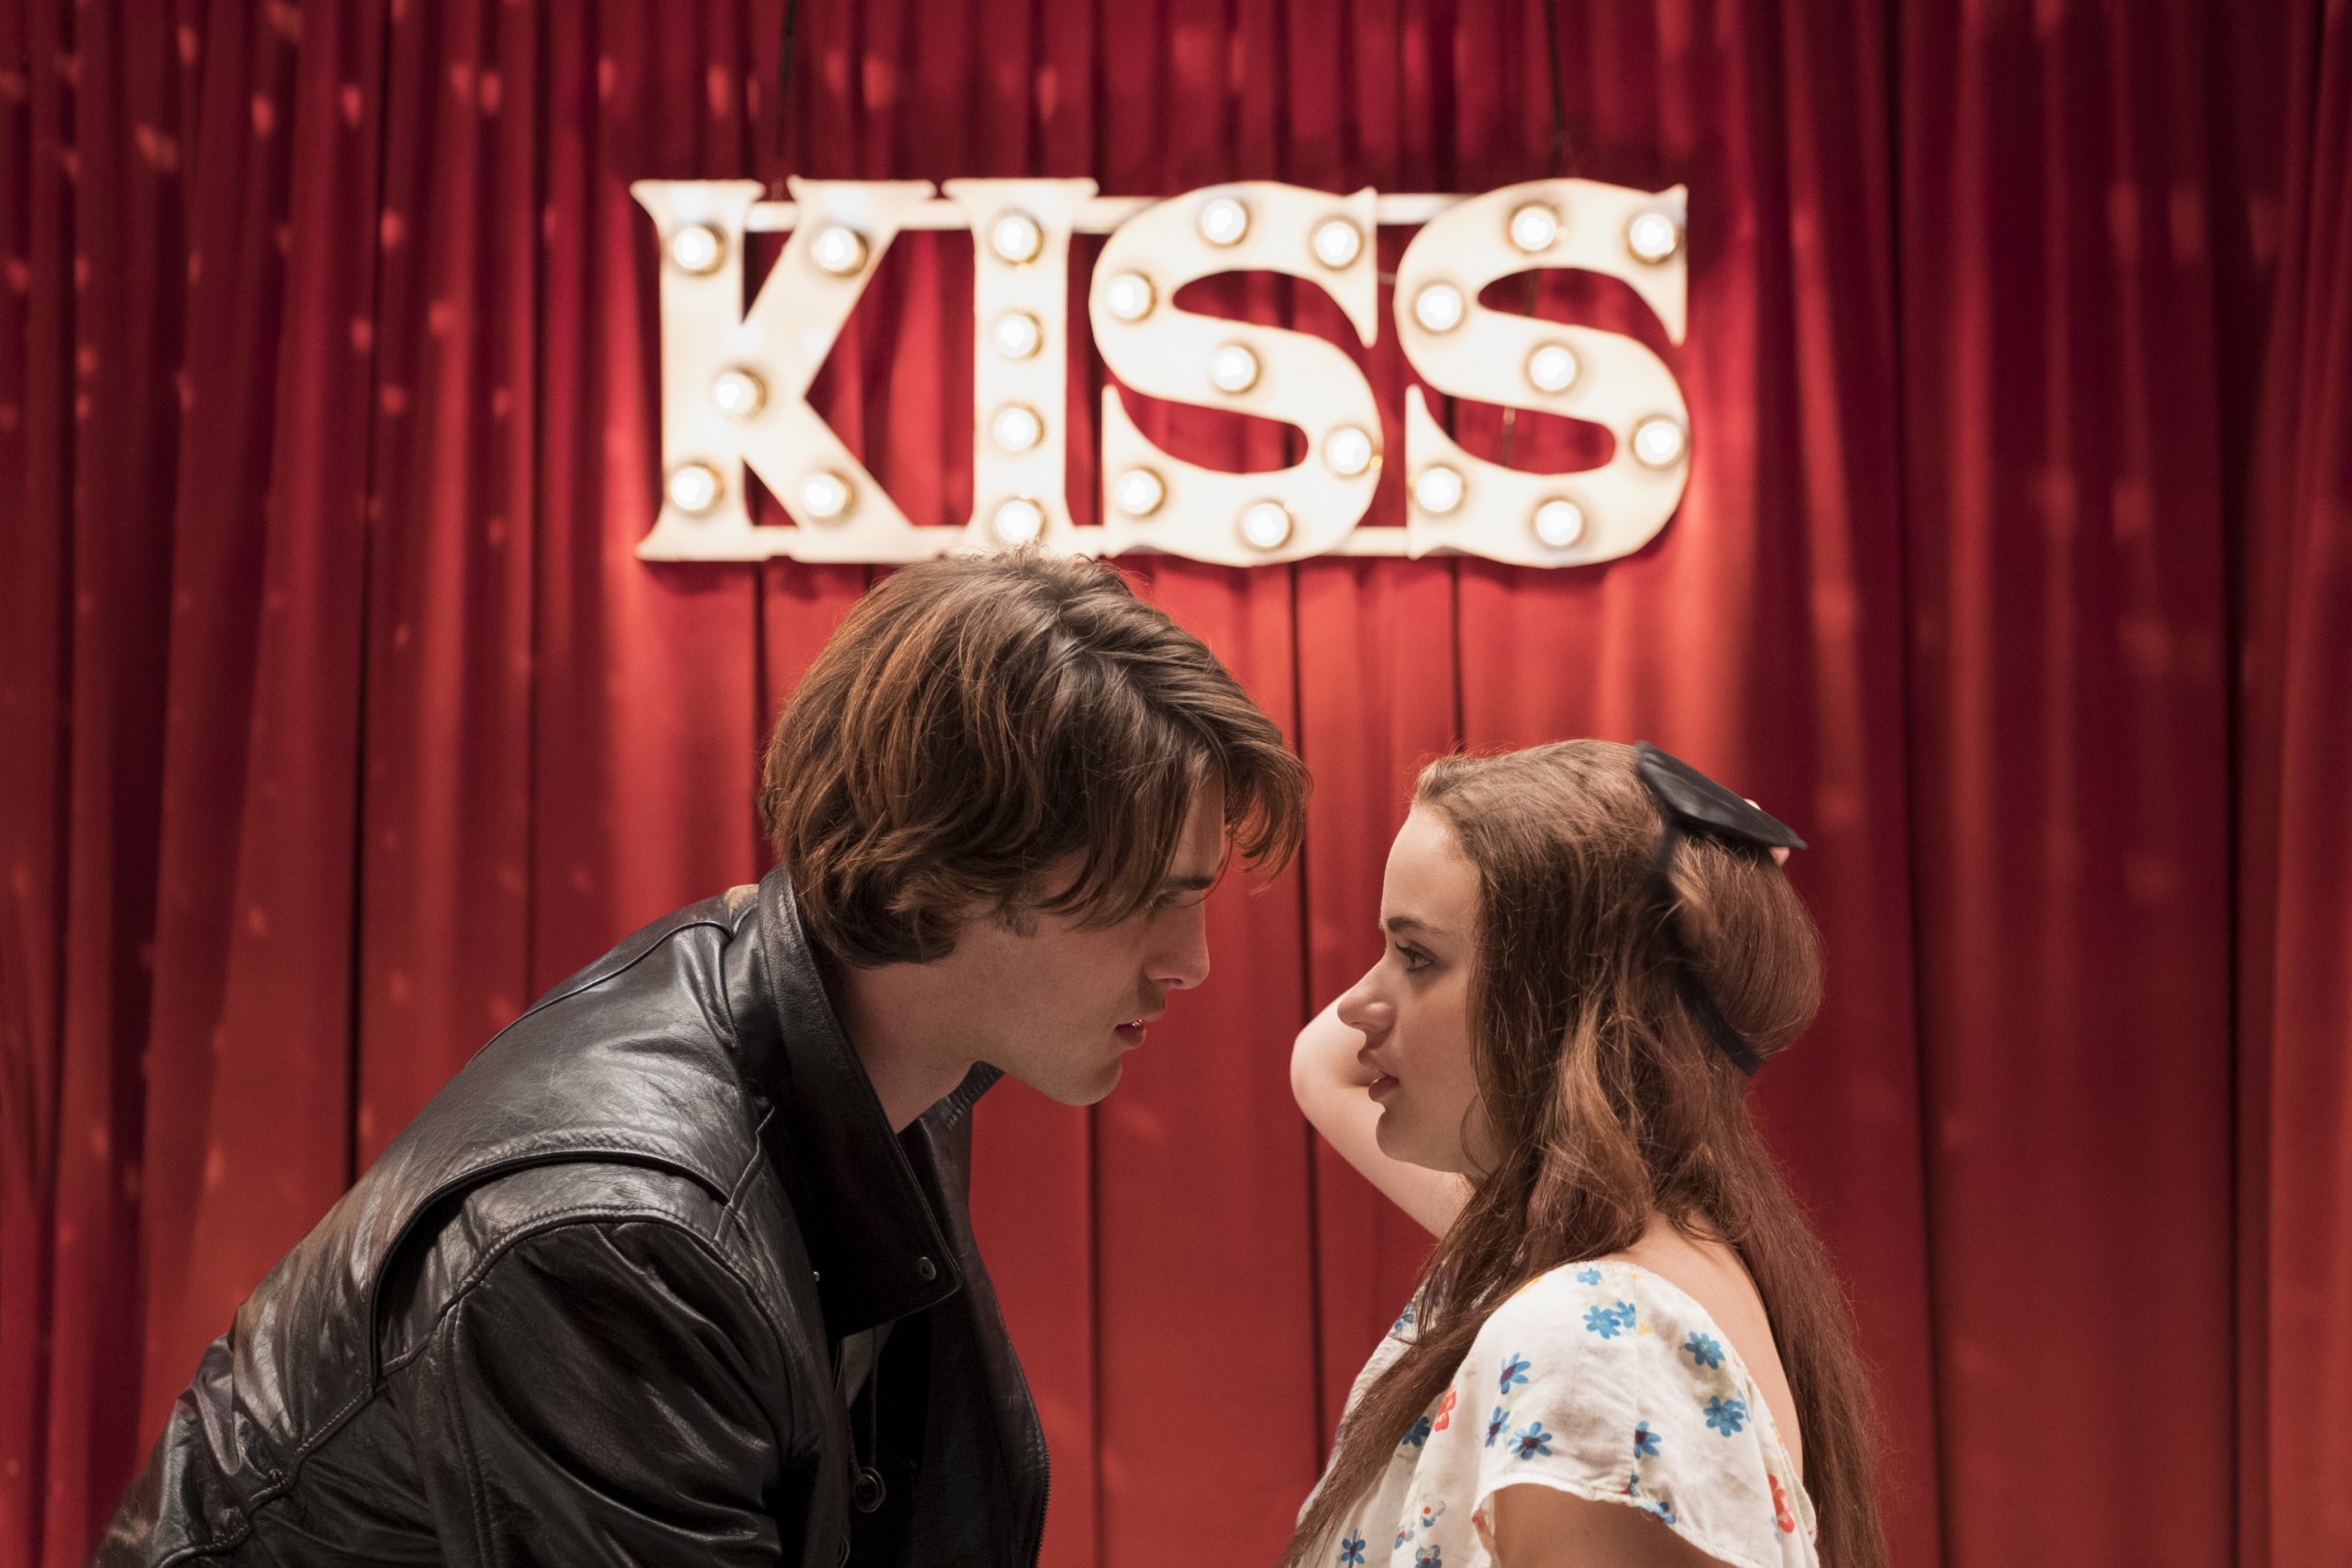 When is The Kissing Booth 2 coming out as Joey King and Joel Courtney confirm return?